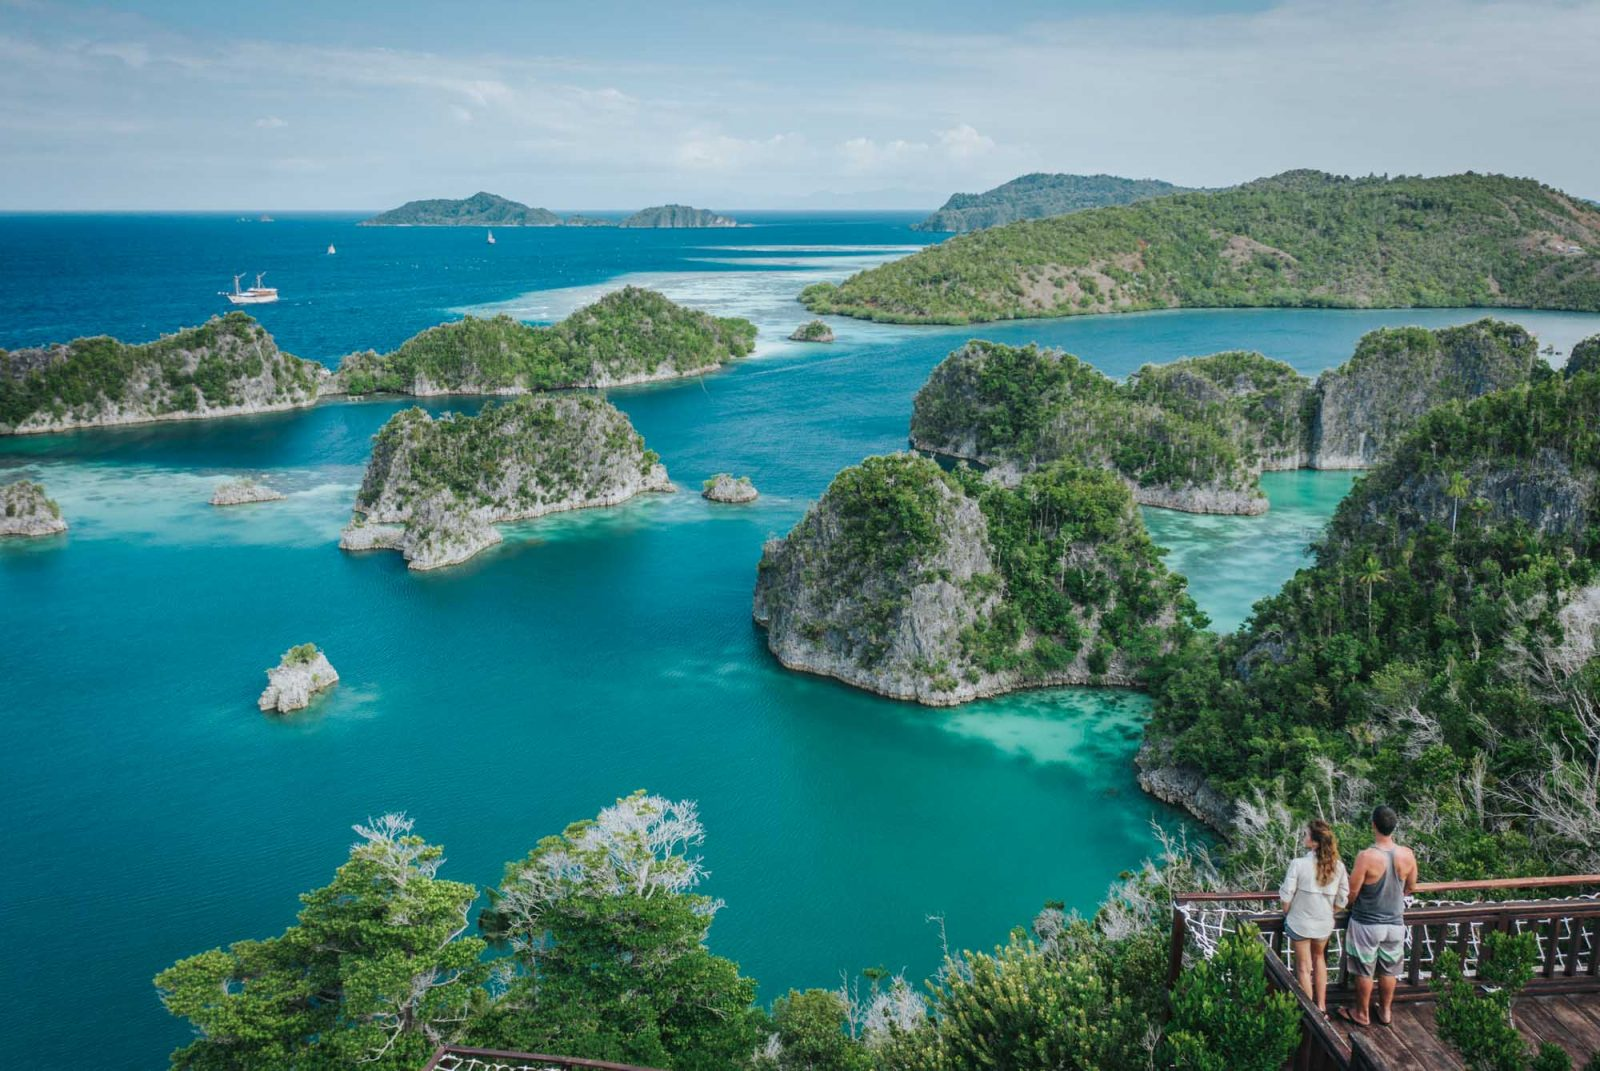 Overlooking the islands of Raja Ampat, Indonesia, off the grid vacation